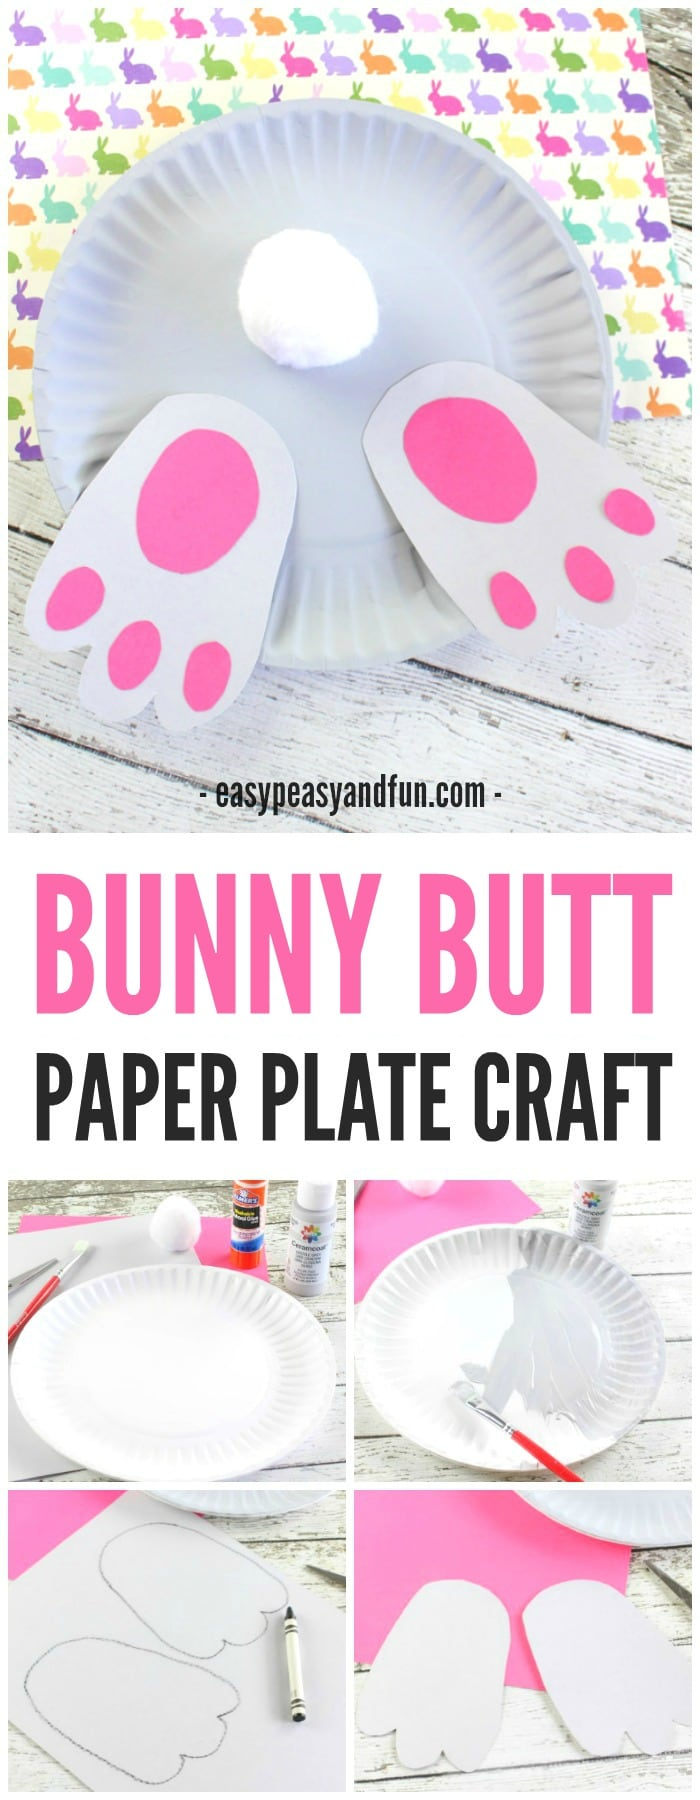 Adorable Bunny Butt Paper Plate Craft for Kids